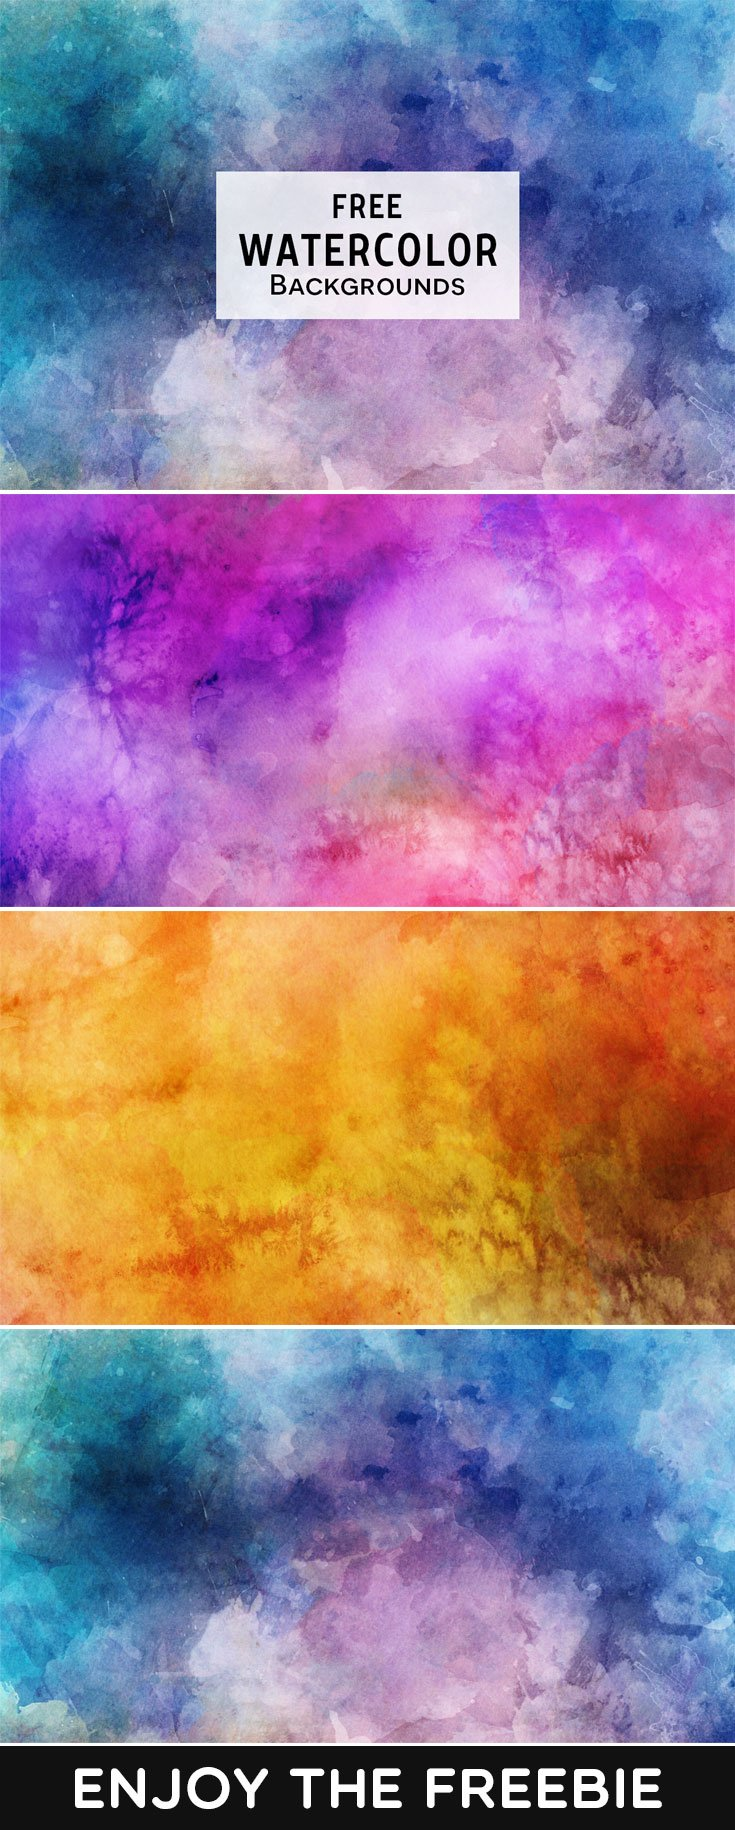 3 Free Watercolor Backgrounds